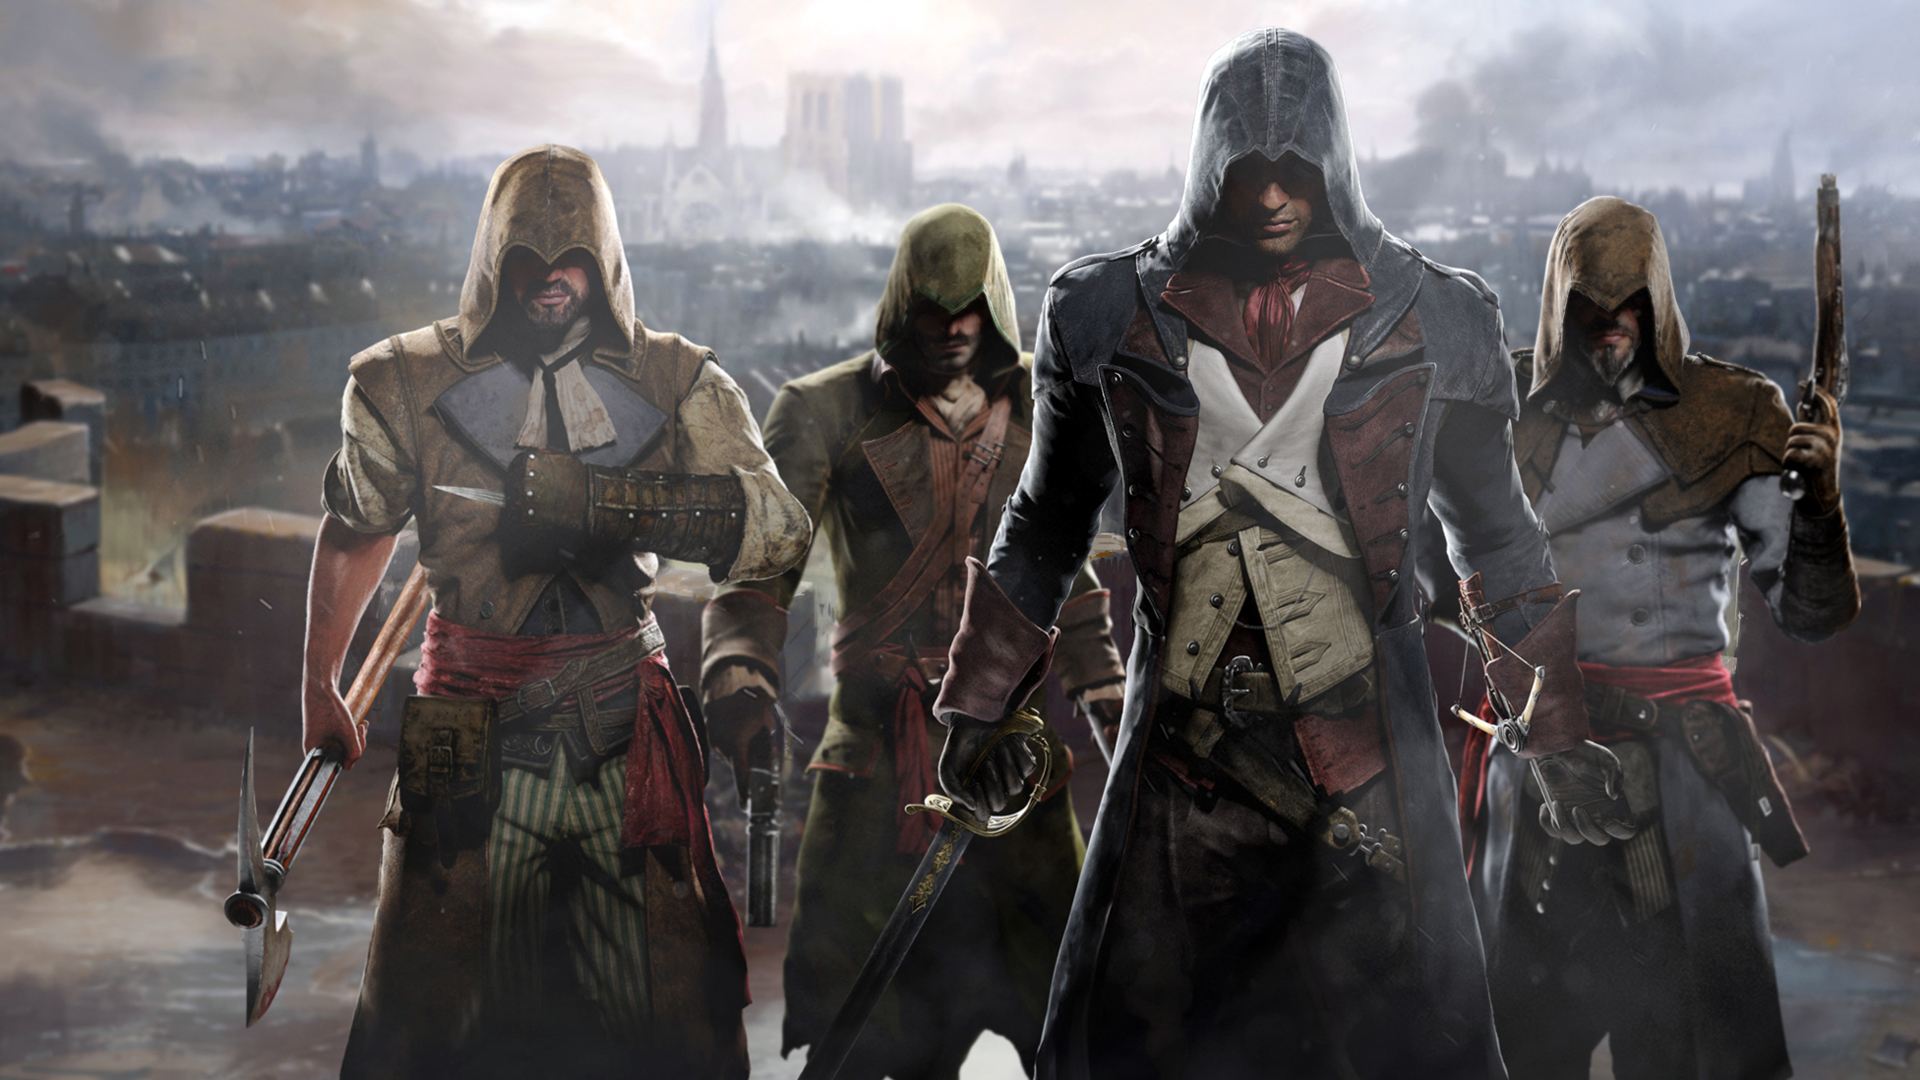 Free Download Assassins Creed Unity 4 Characters 1920x1080 For